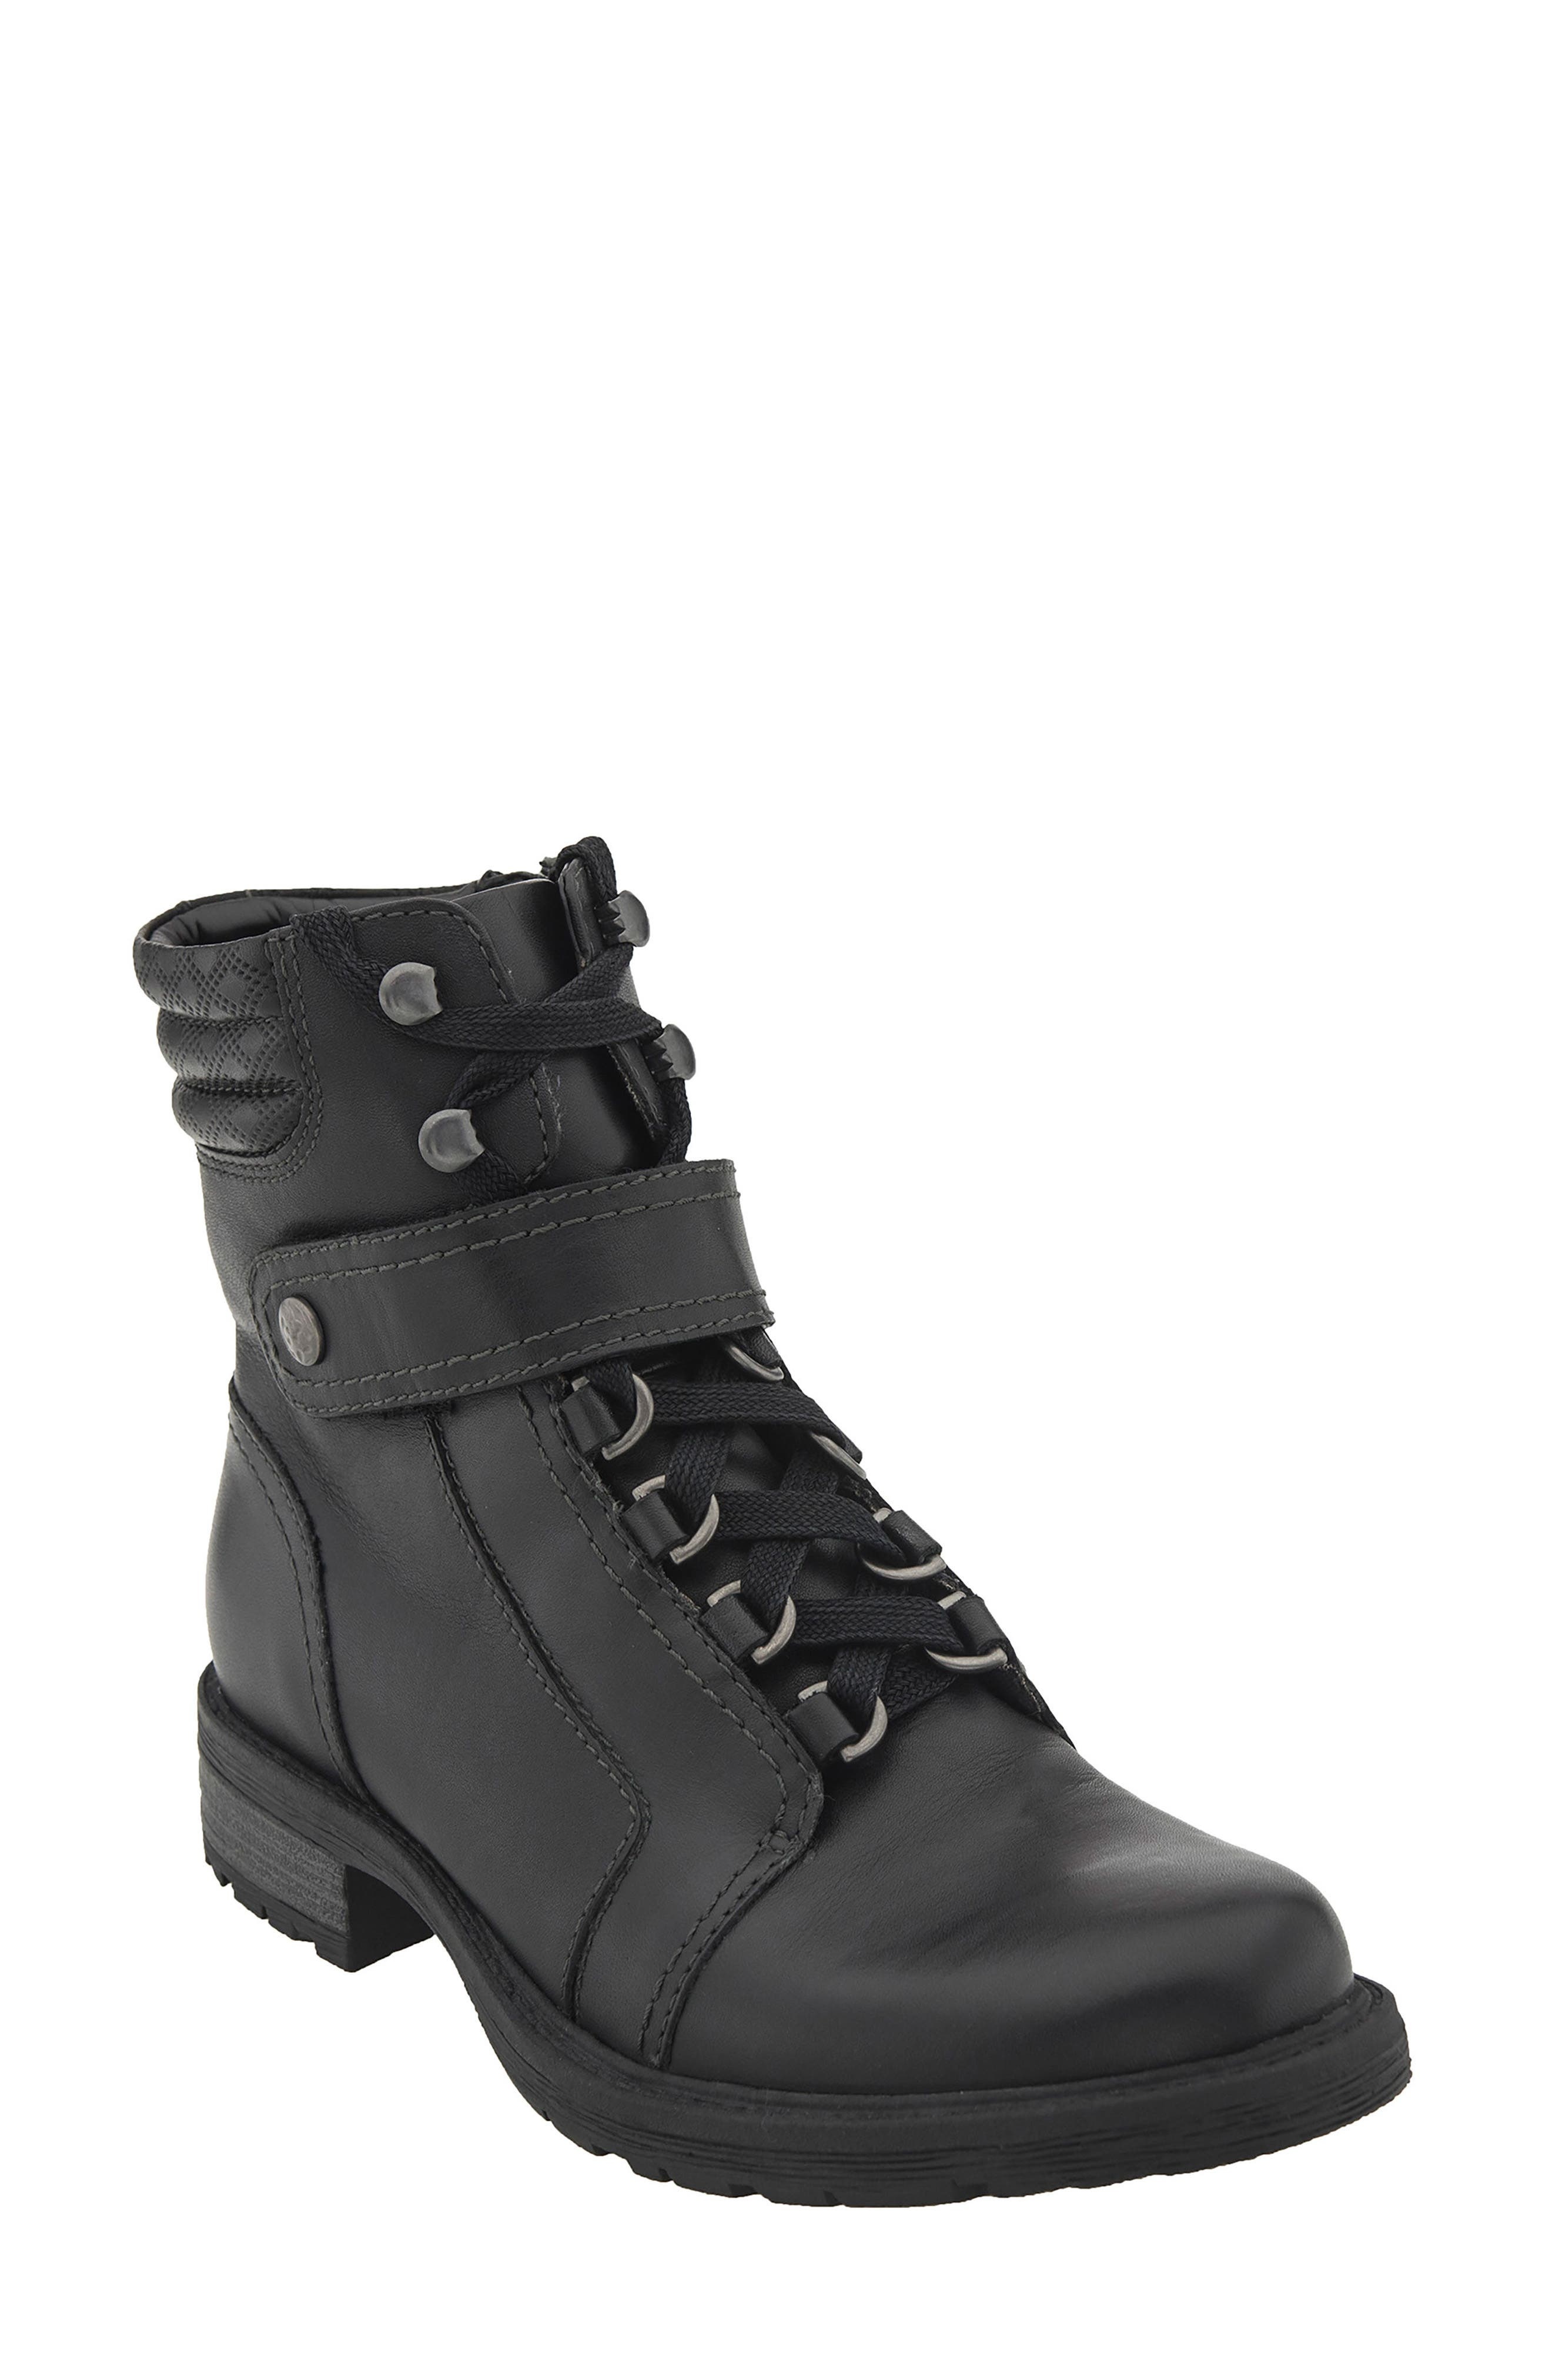 Everest Lace-Up Boot,                         Main,                         color, 001